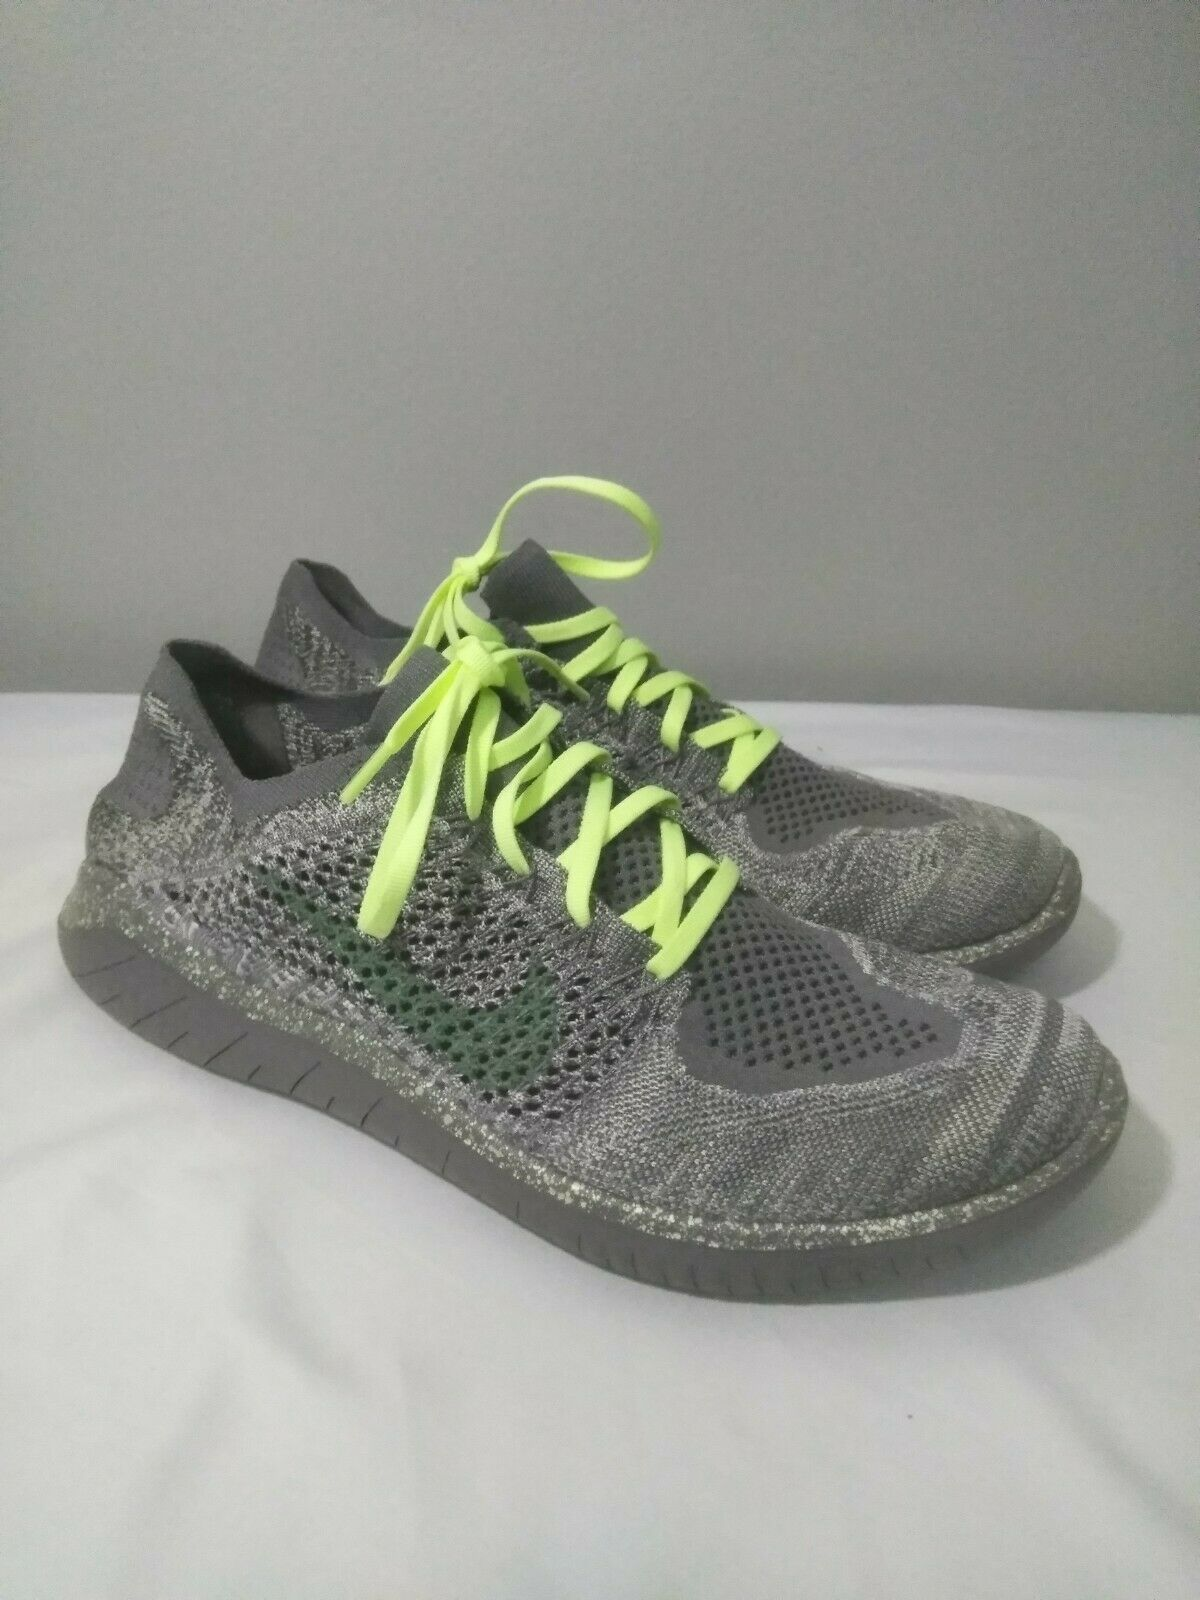 Nike Free RN 2018 ID Running shoes shoes shoes Size 10.5 AT4153-981 83f550